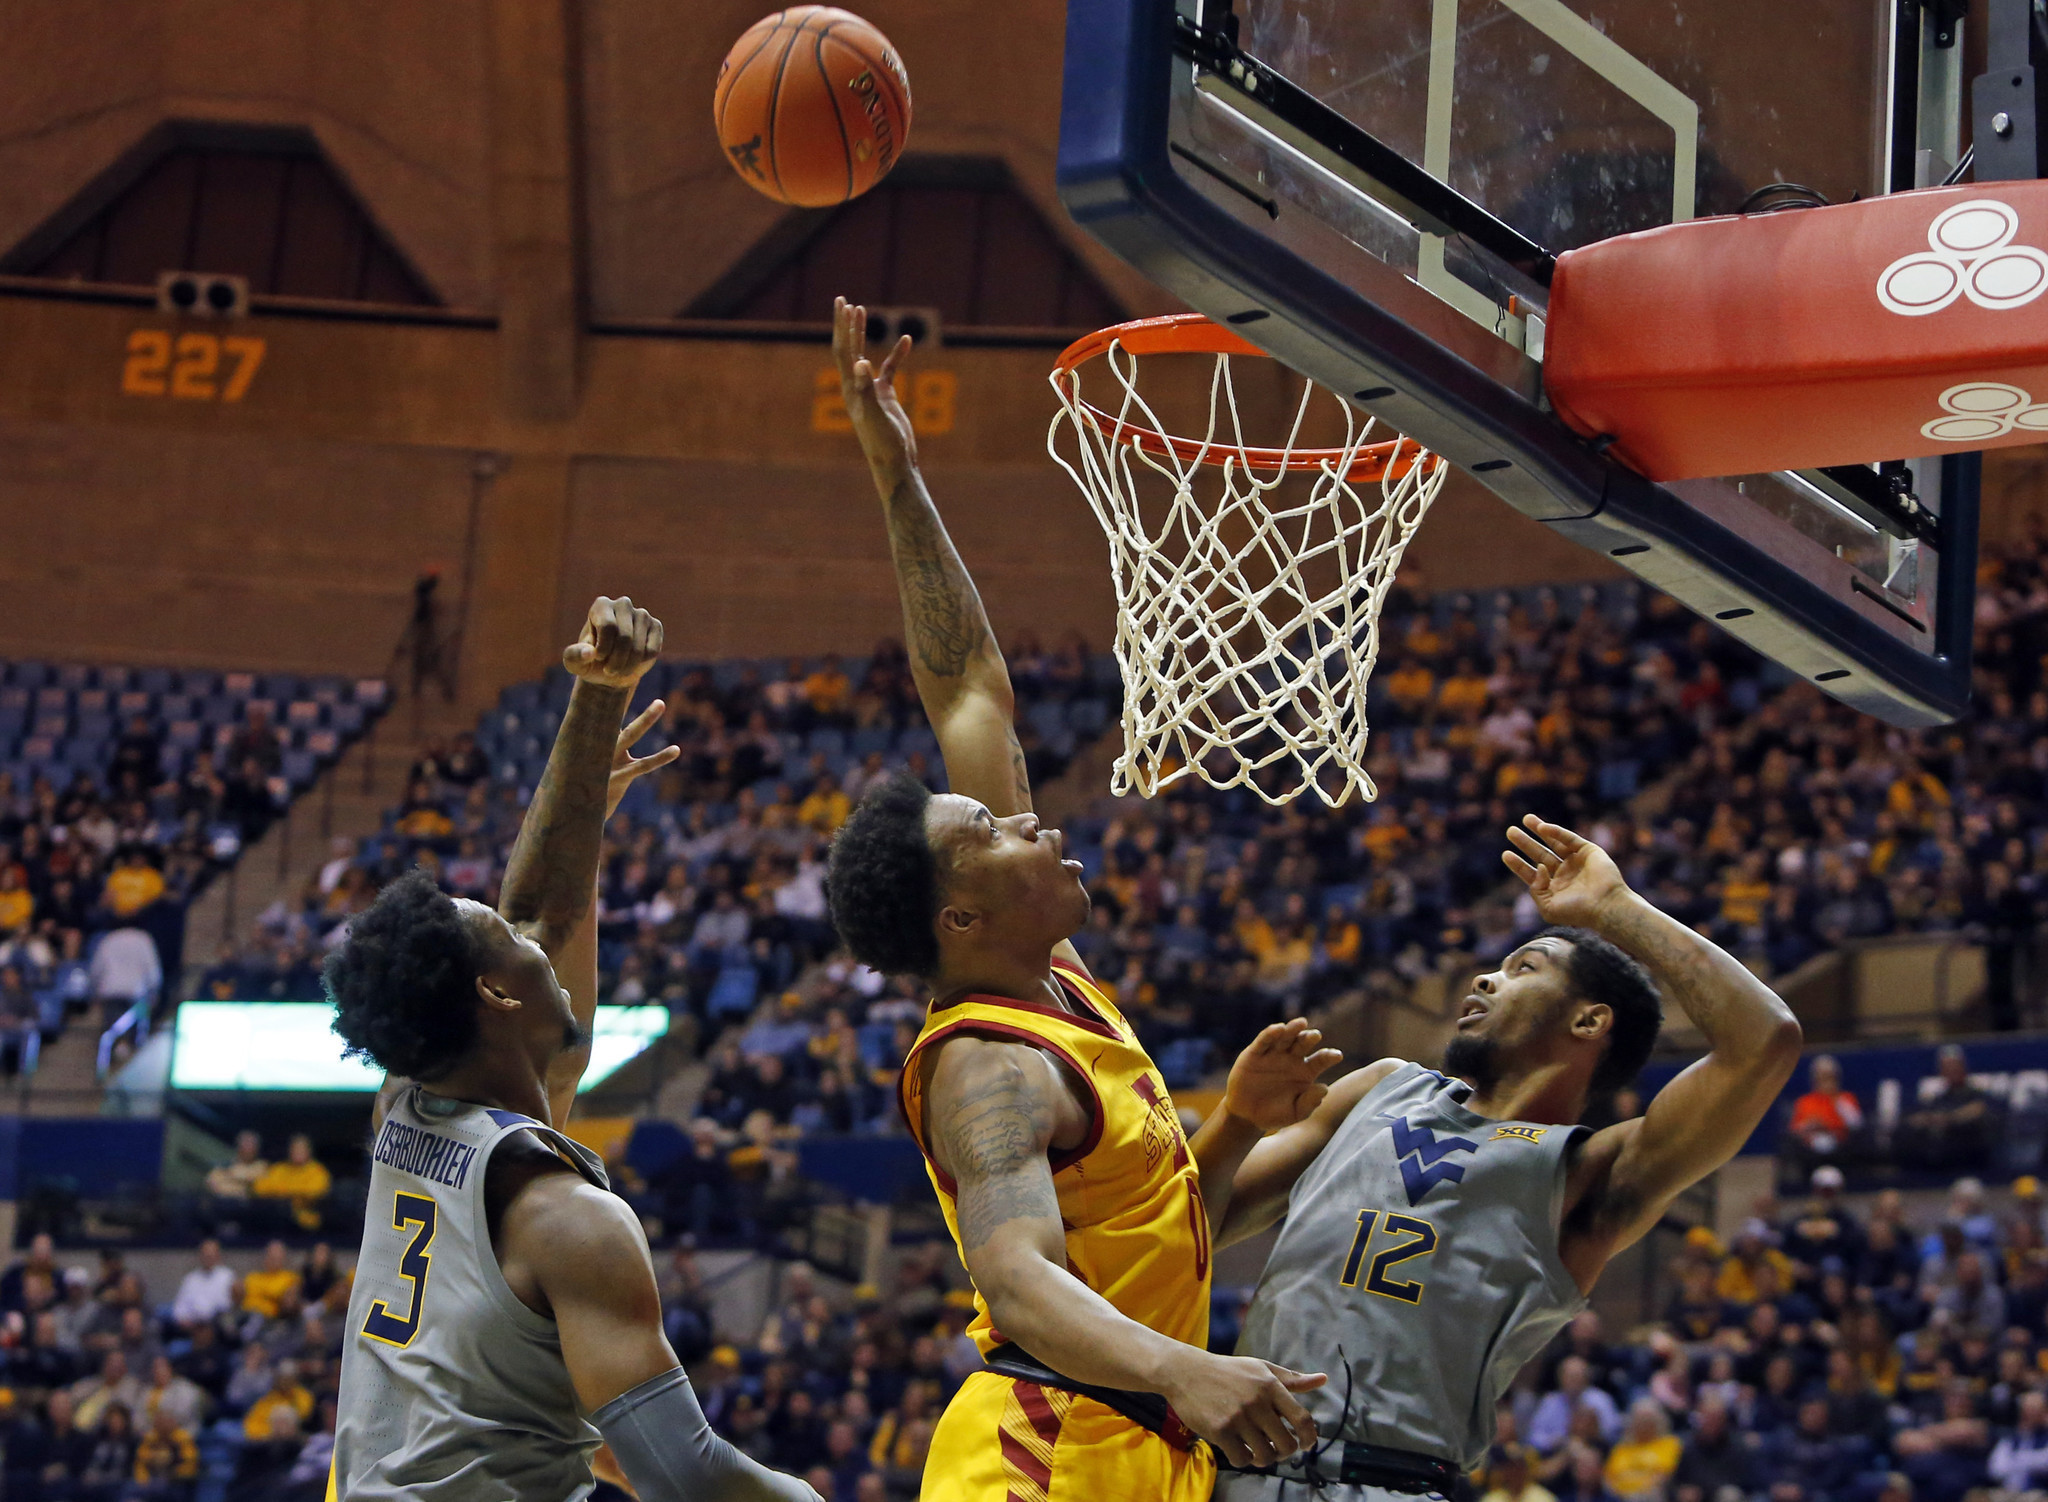 Hinsdale South grad Zion Griffin planning to transfer from Iowa State